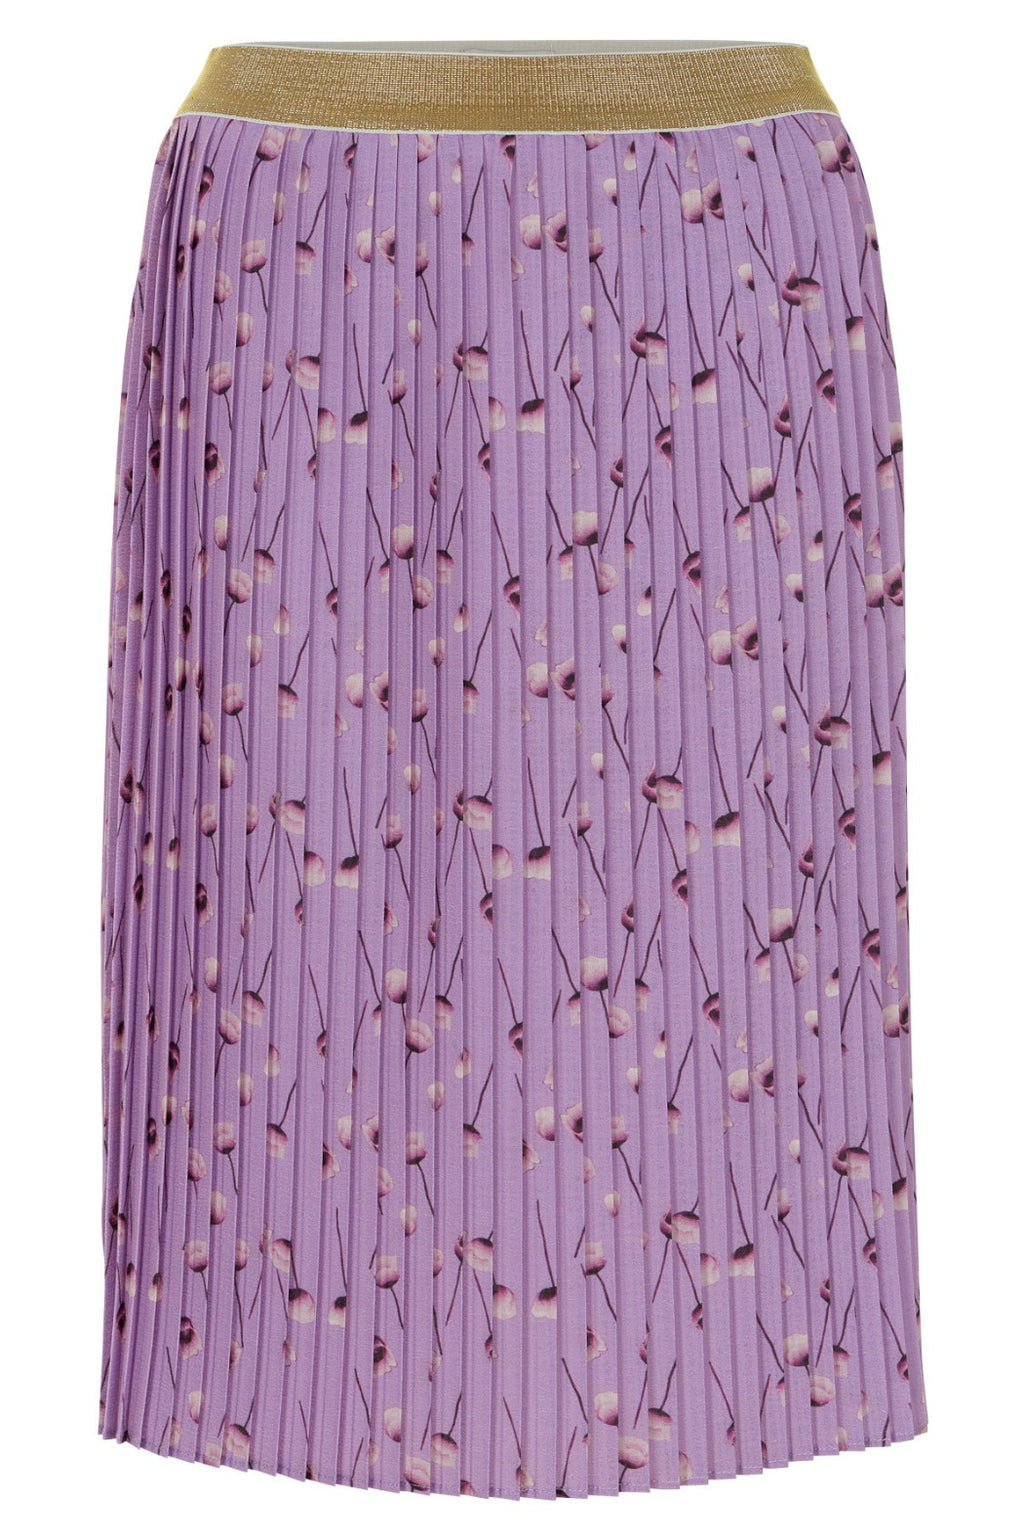 Nümph Kallista Skirt in Lavendula